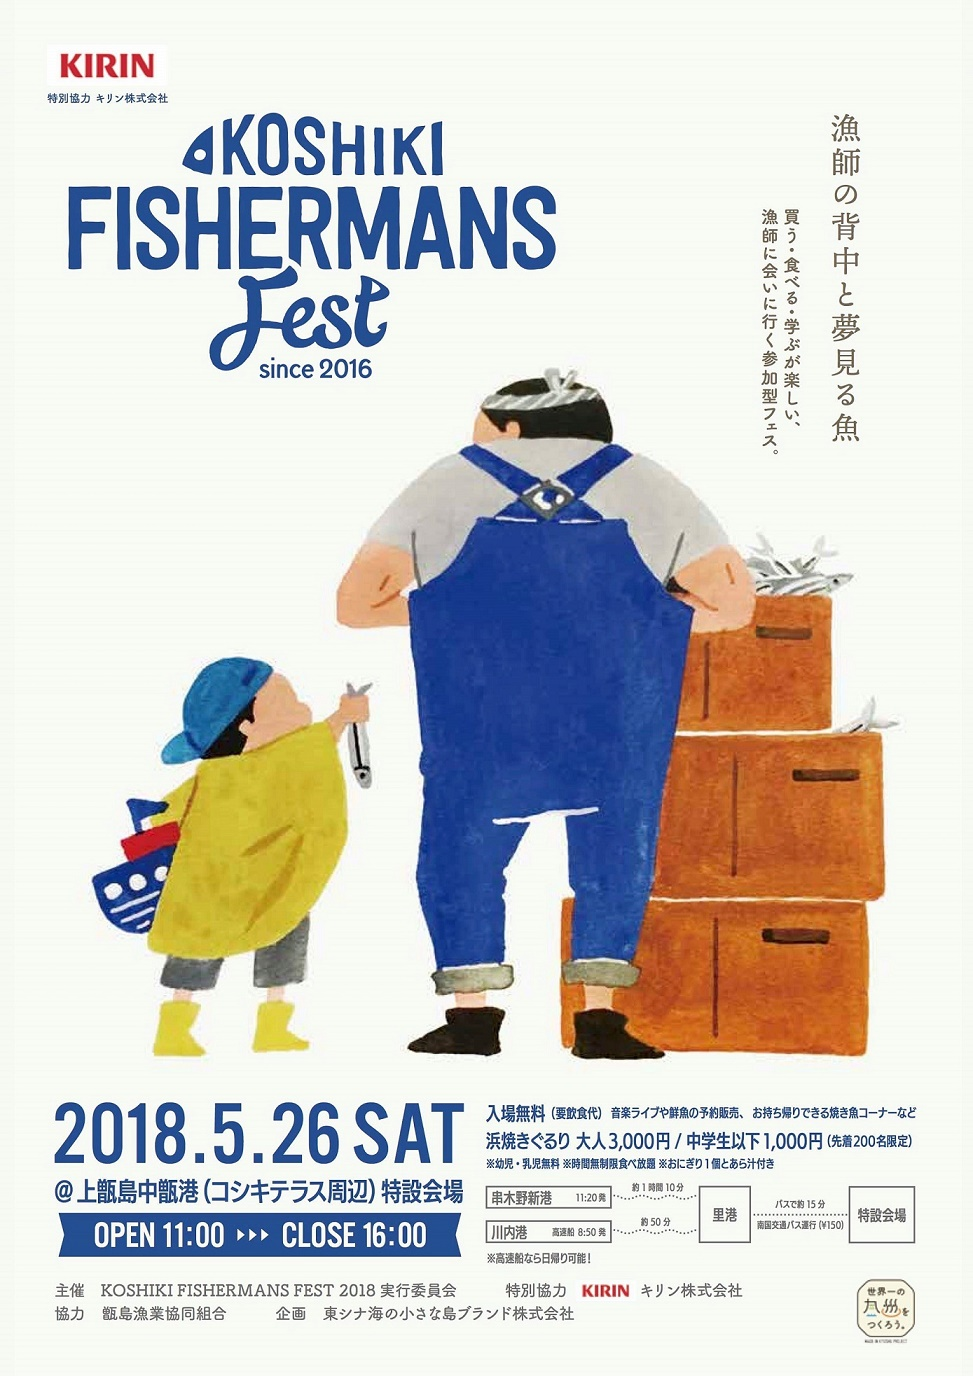 KOSHIKI  FISHERMANS  Fest